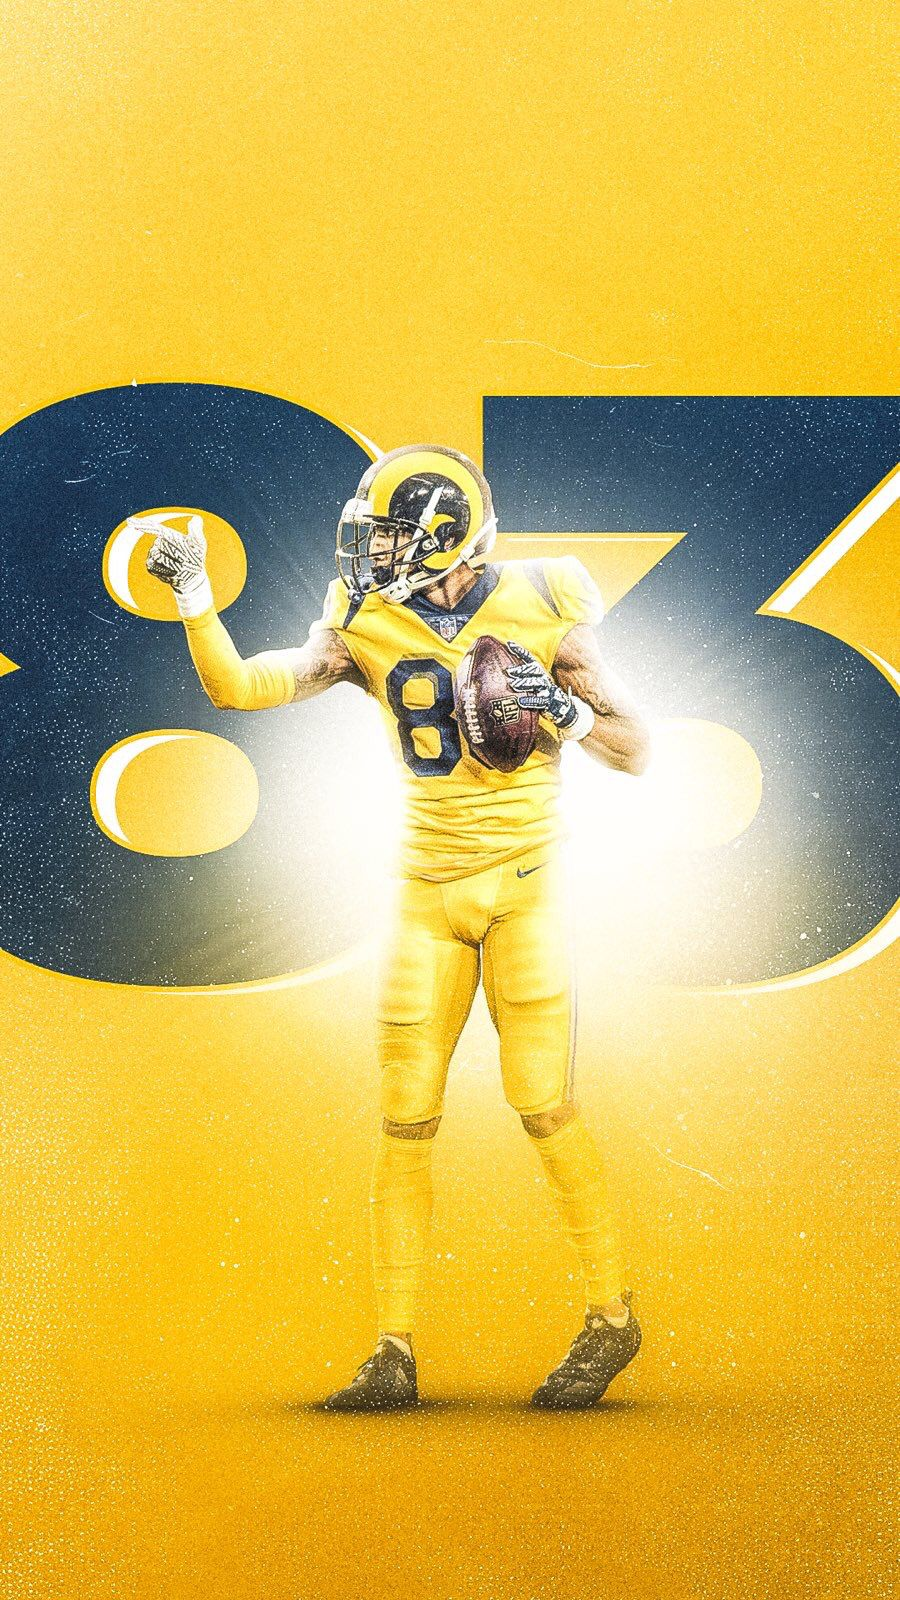 Pin By Mariana Lopez On La Rams Sports Graphic Design Nfl Football Players Rams Football